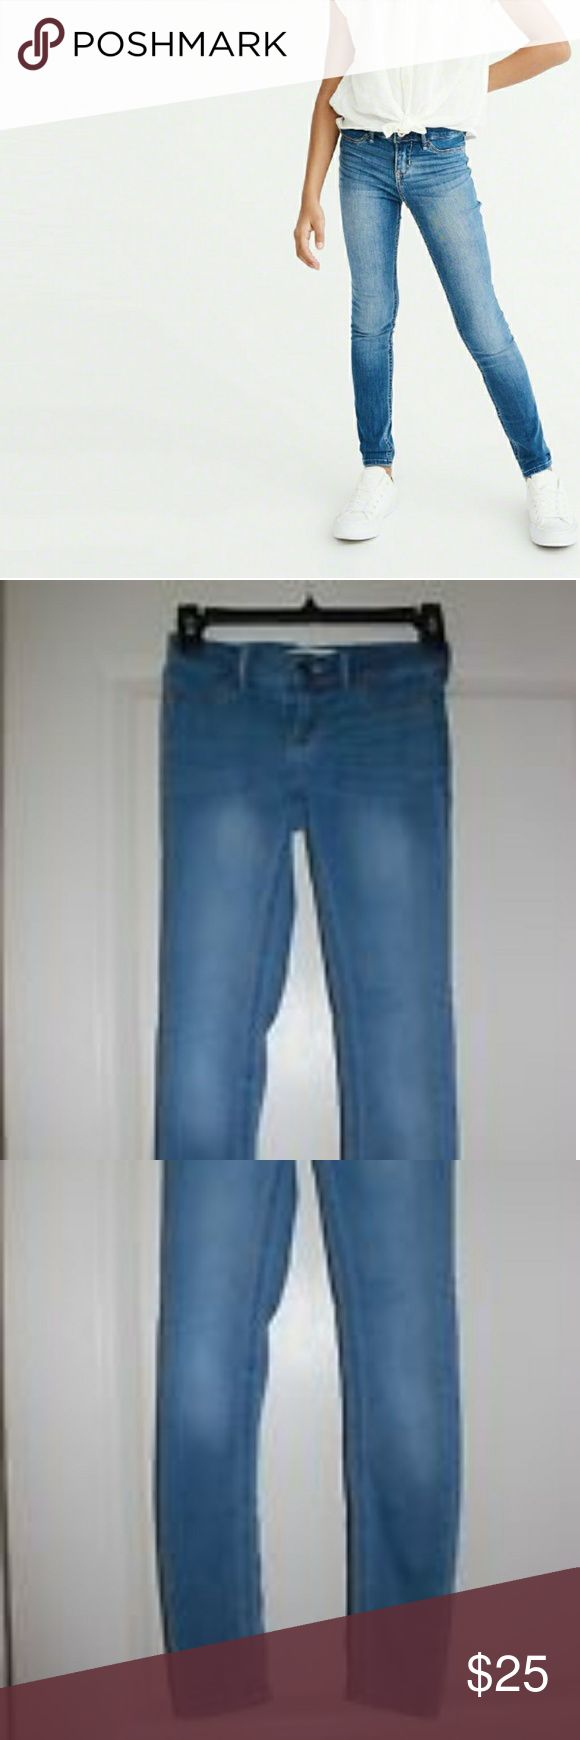 Abercrombie Kids-Girl's Stretch Straight Jeans Abercrombie Kids: Girl's Stretch Straight Leg Jeans in the light wash. They are in prestine condition! They are this Fall/Winter's must-have jeans for school! Abercombie Kids Bottoms Jeans